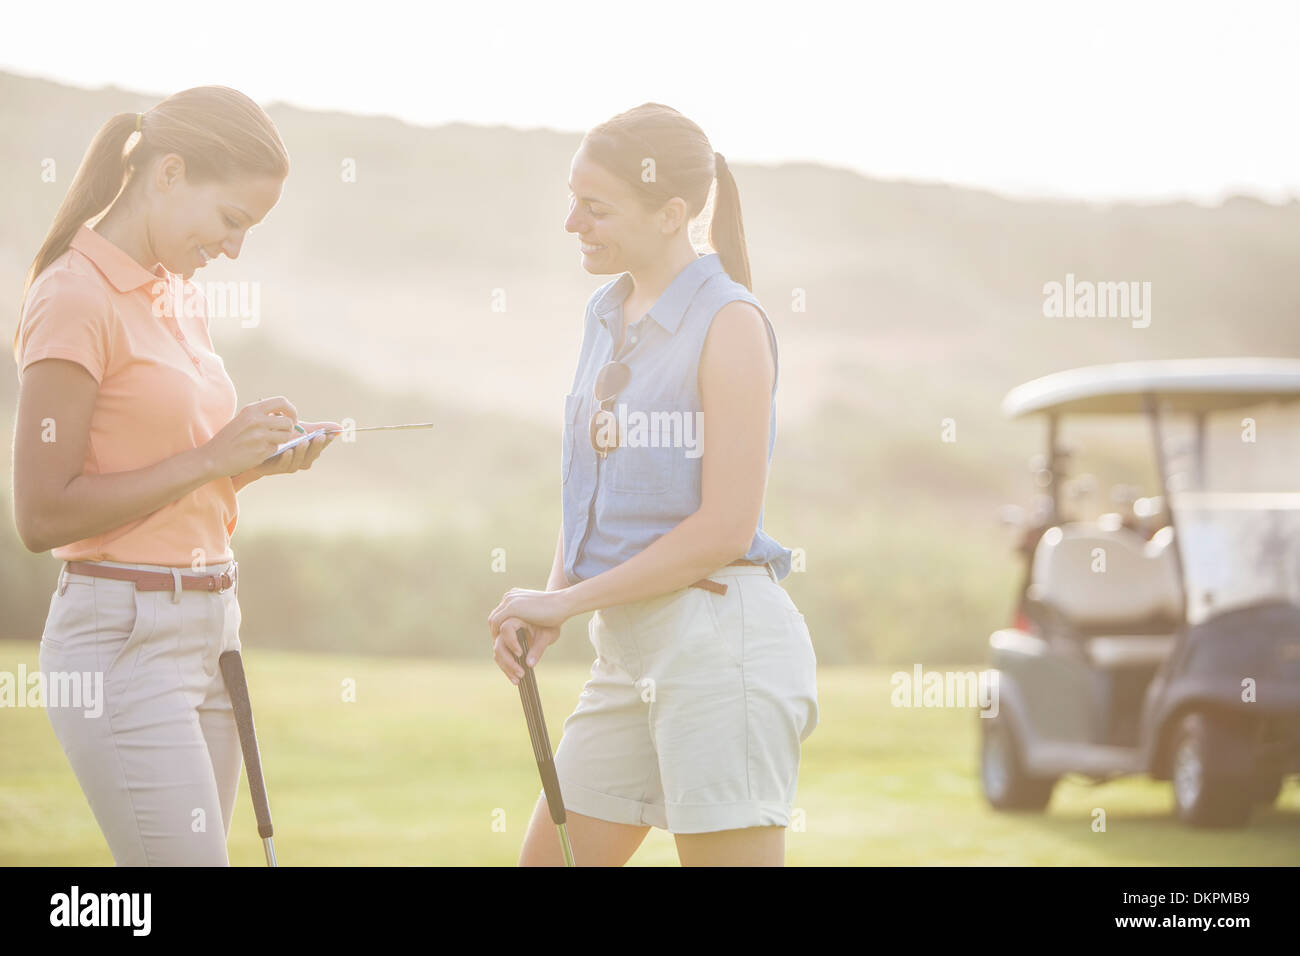 Women playing golf on course - Stock Image